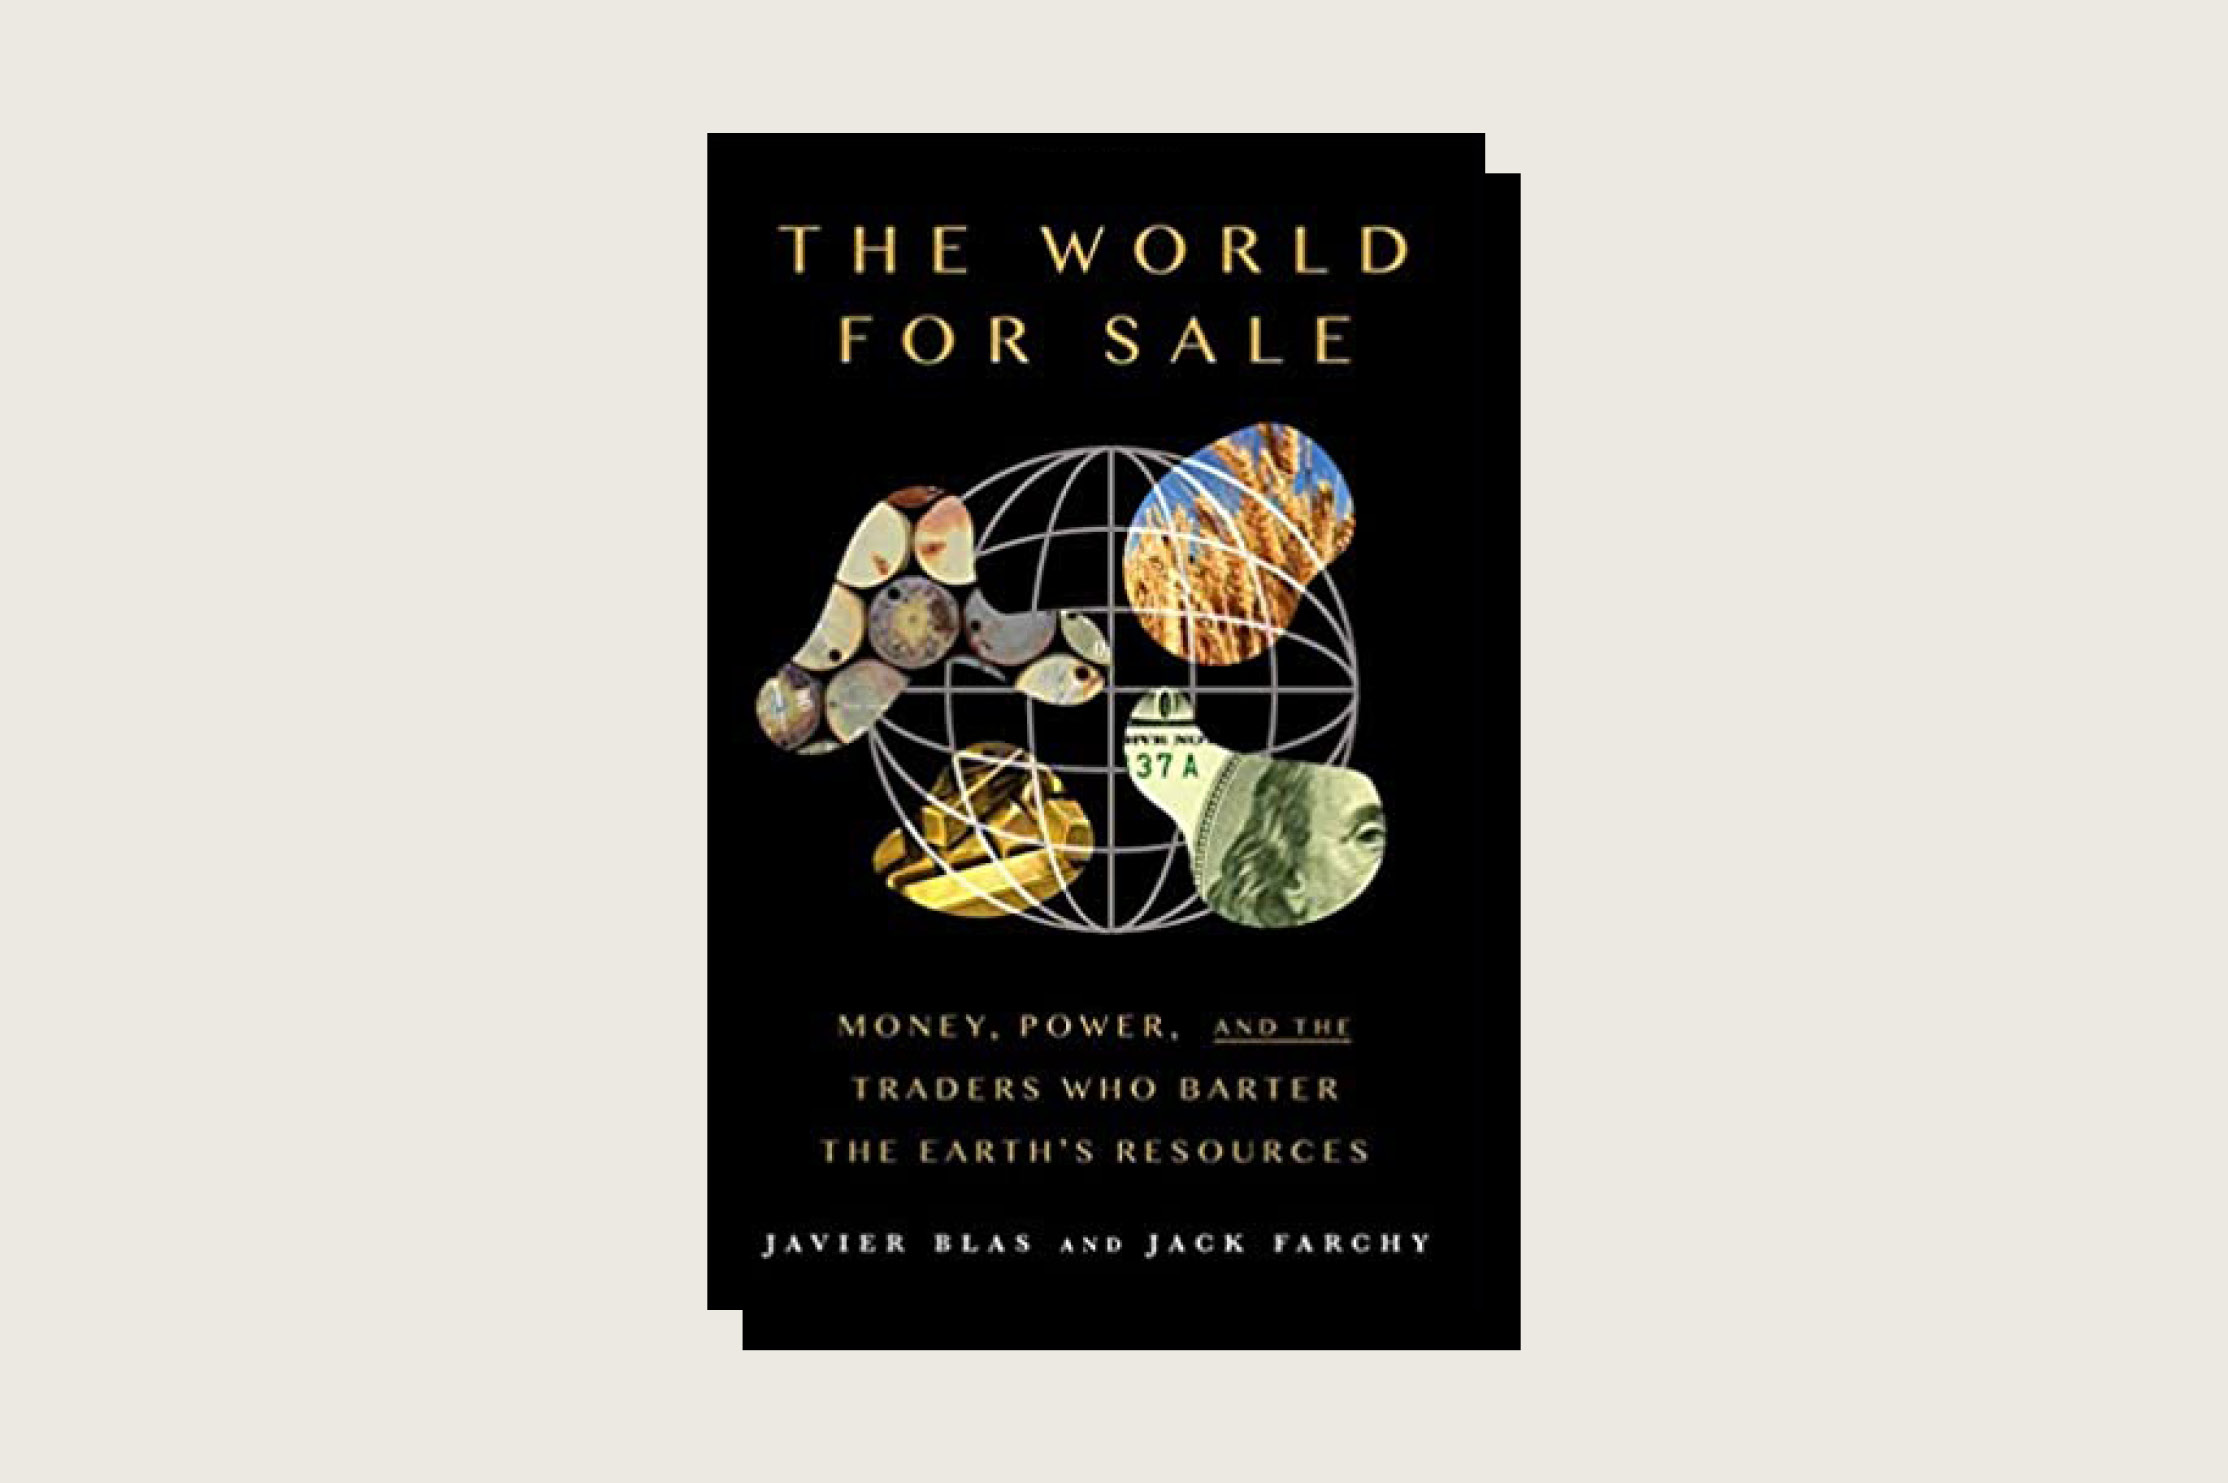 The World For Sale: Money, Power, and the Traders Who Barter the Earth's Resources, Javier Blas and Jack Farchy, Oxford University Press, 416 pp., .95, March 2021